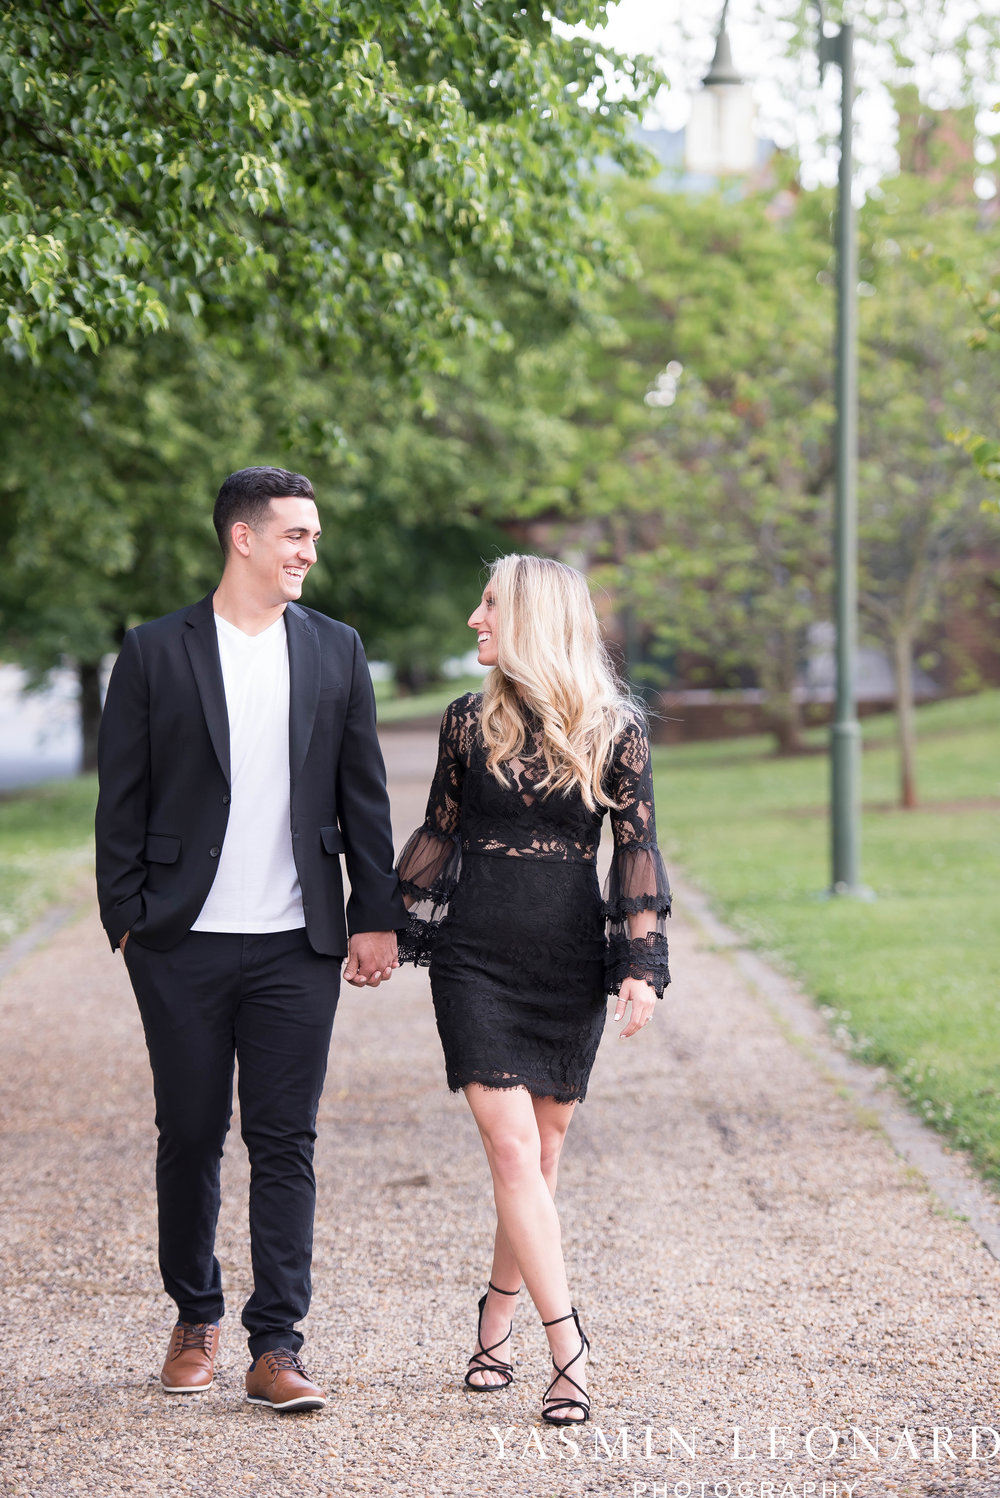 Downtown Winston Salem Engagement Session - NC Engaged - NC Weddings - Winston Salem Weddings - Yasmin Leonard Photography-28.jpg